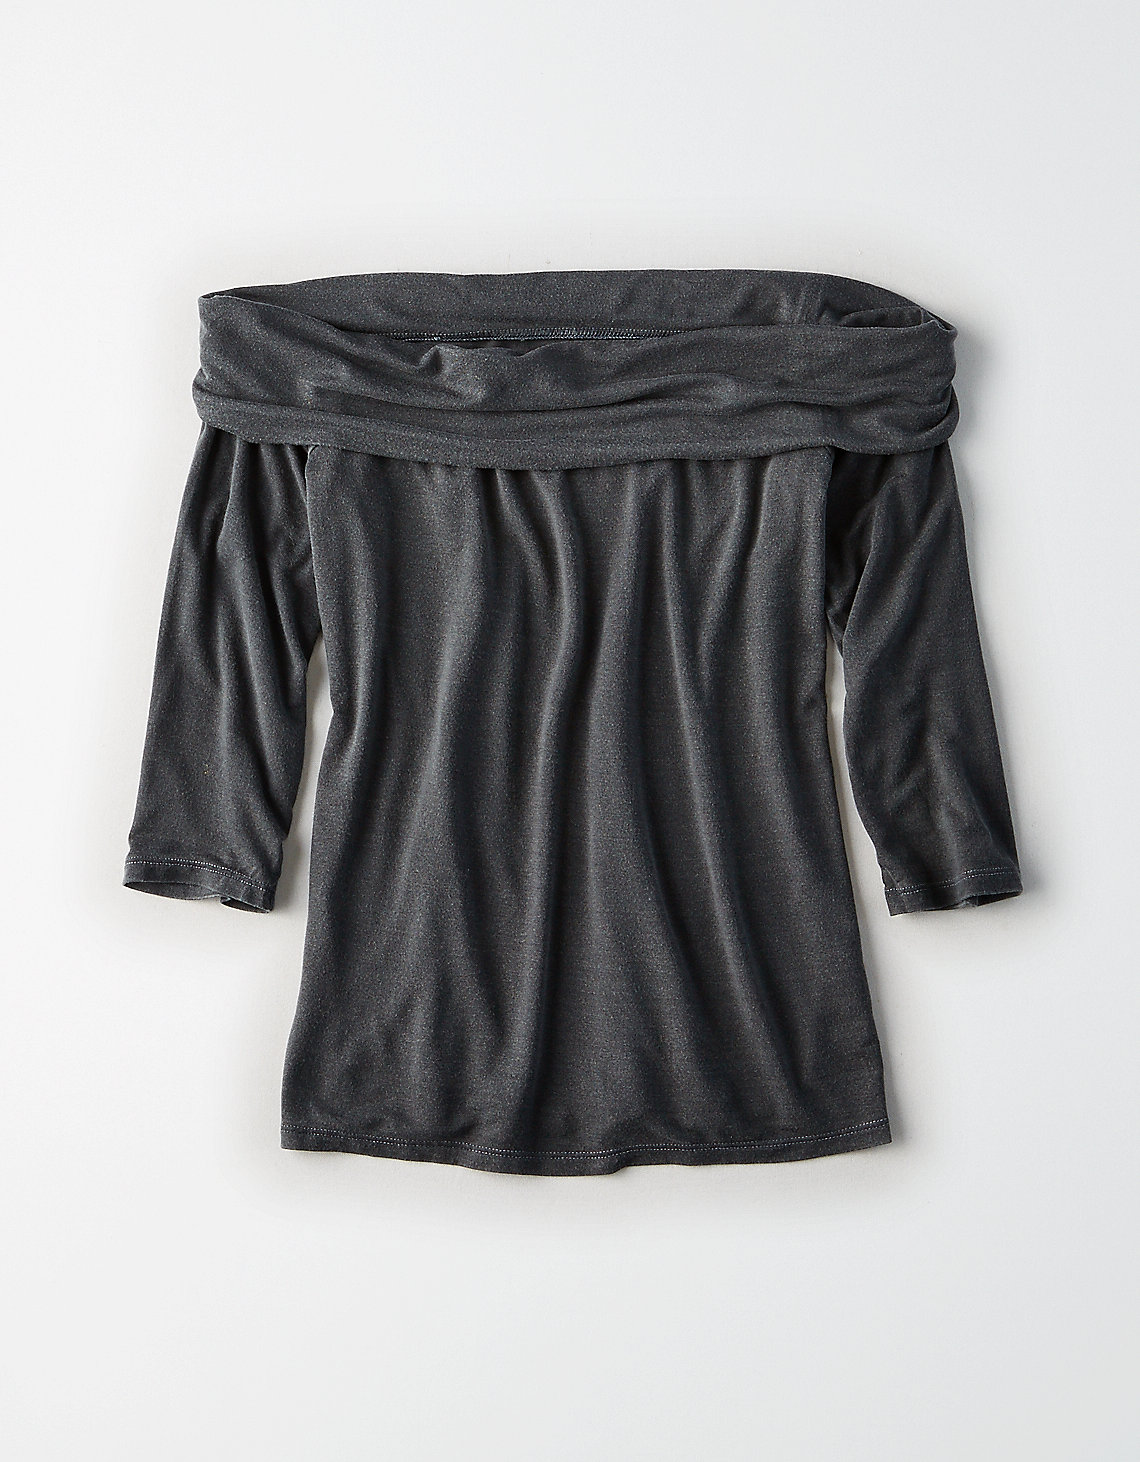 AE Soft & Sexy Off-the-Shoulder Foldover Top